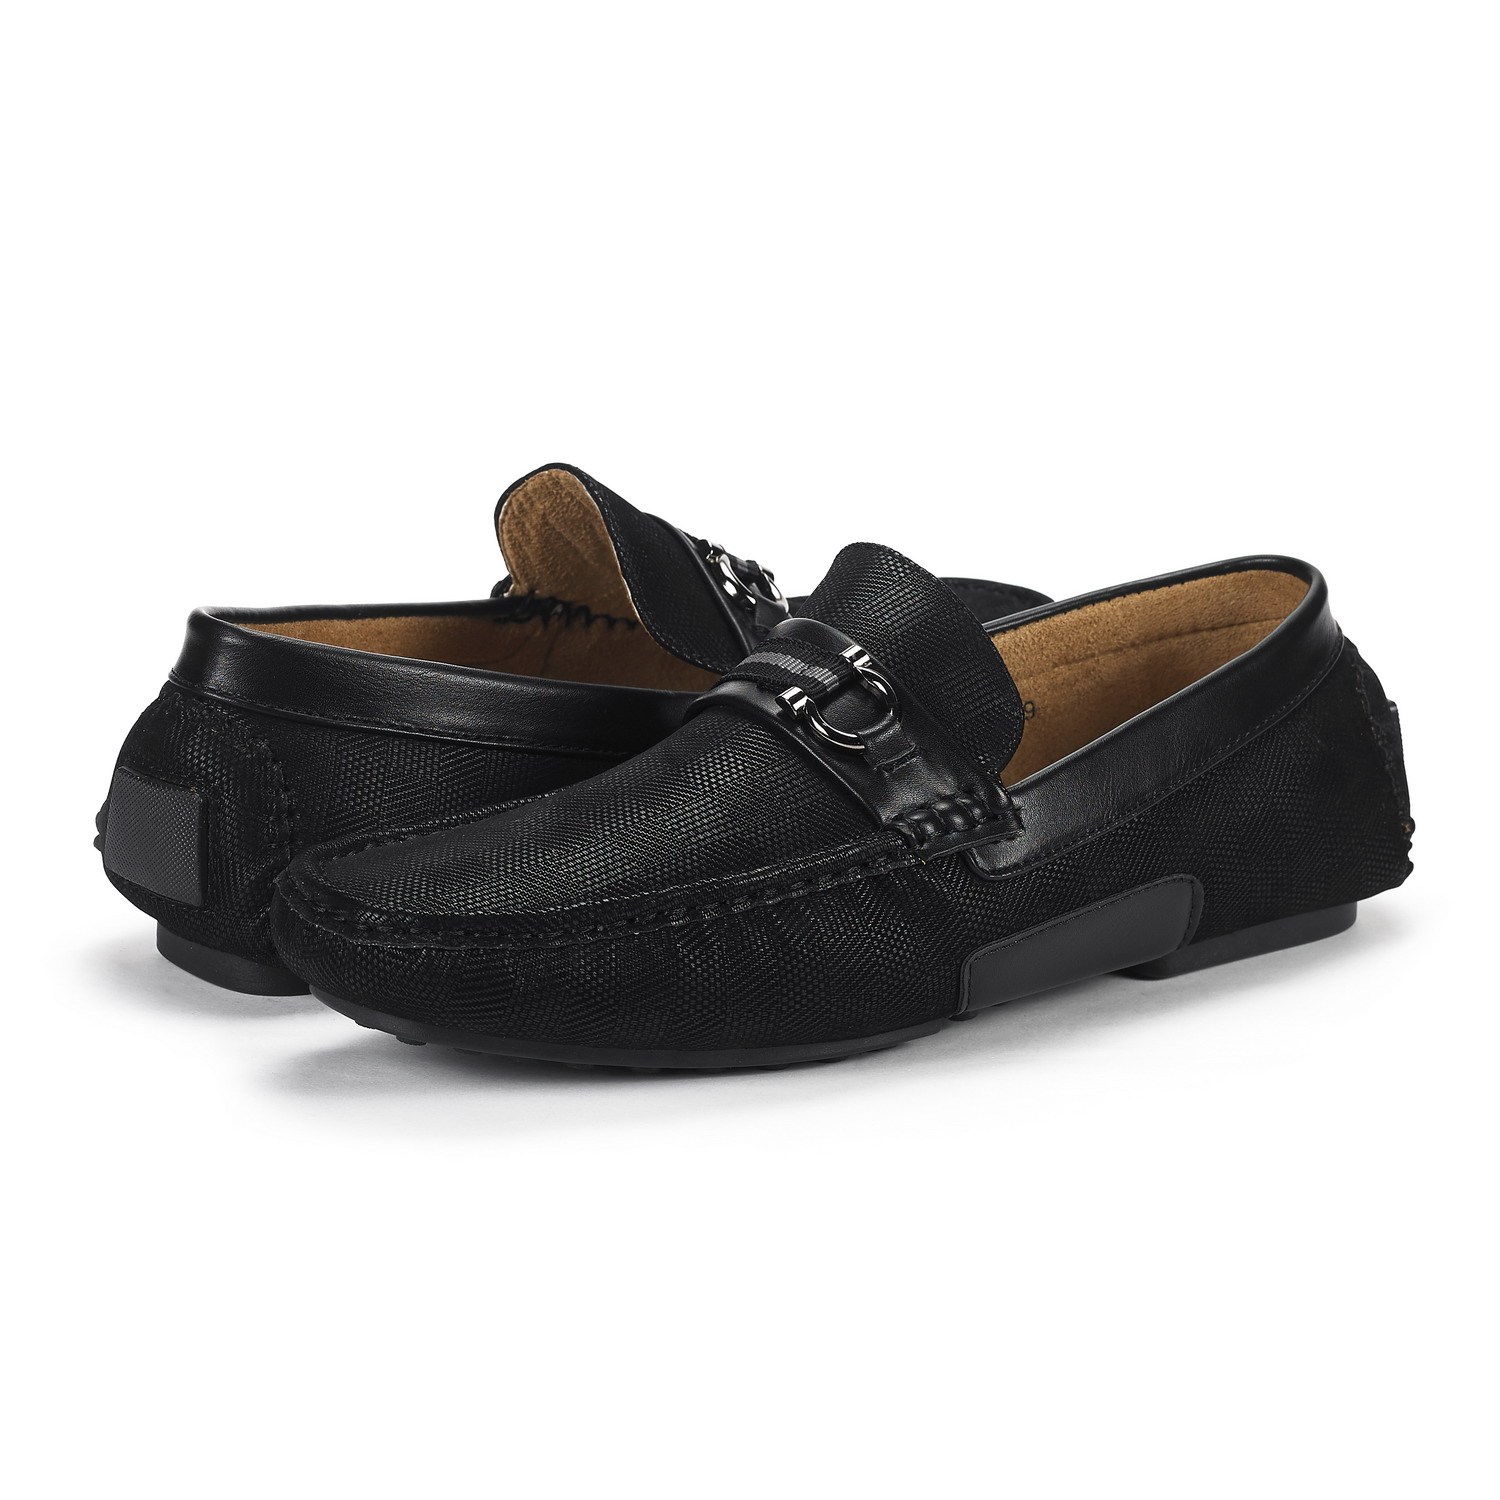 Bruno-Marc-Men-Casual-Driving-Loafers-Breathable-Antiskid-Slip-On-Moccasins-Shoe thumbnail 11